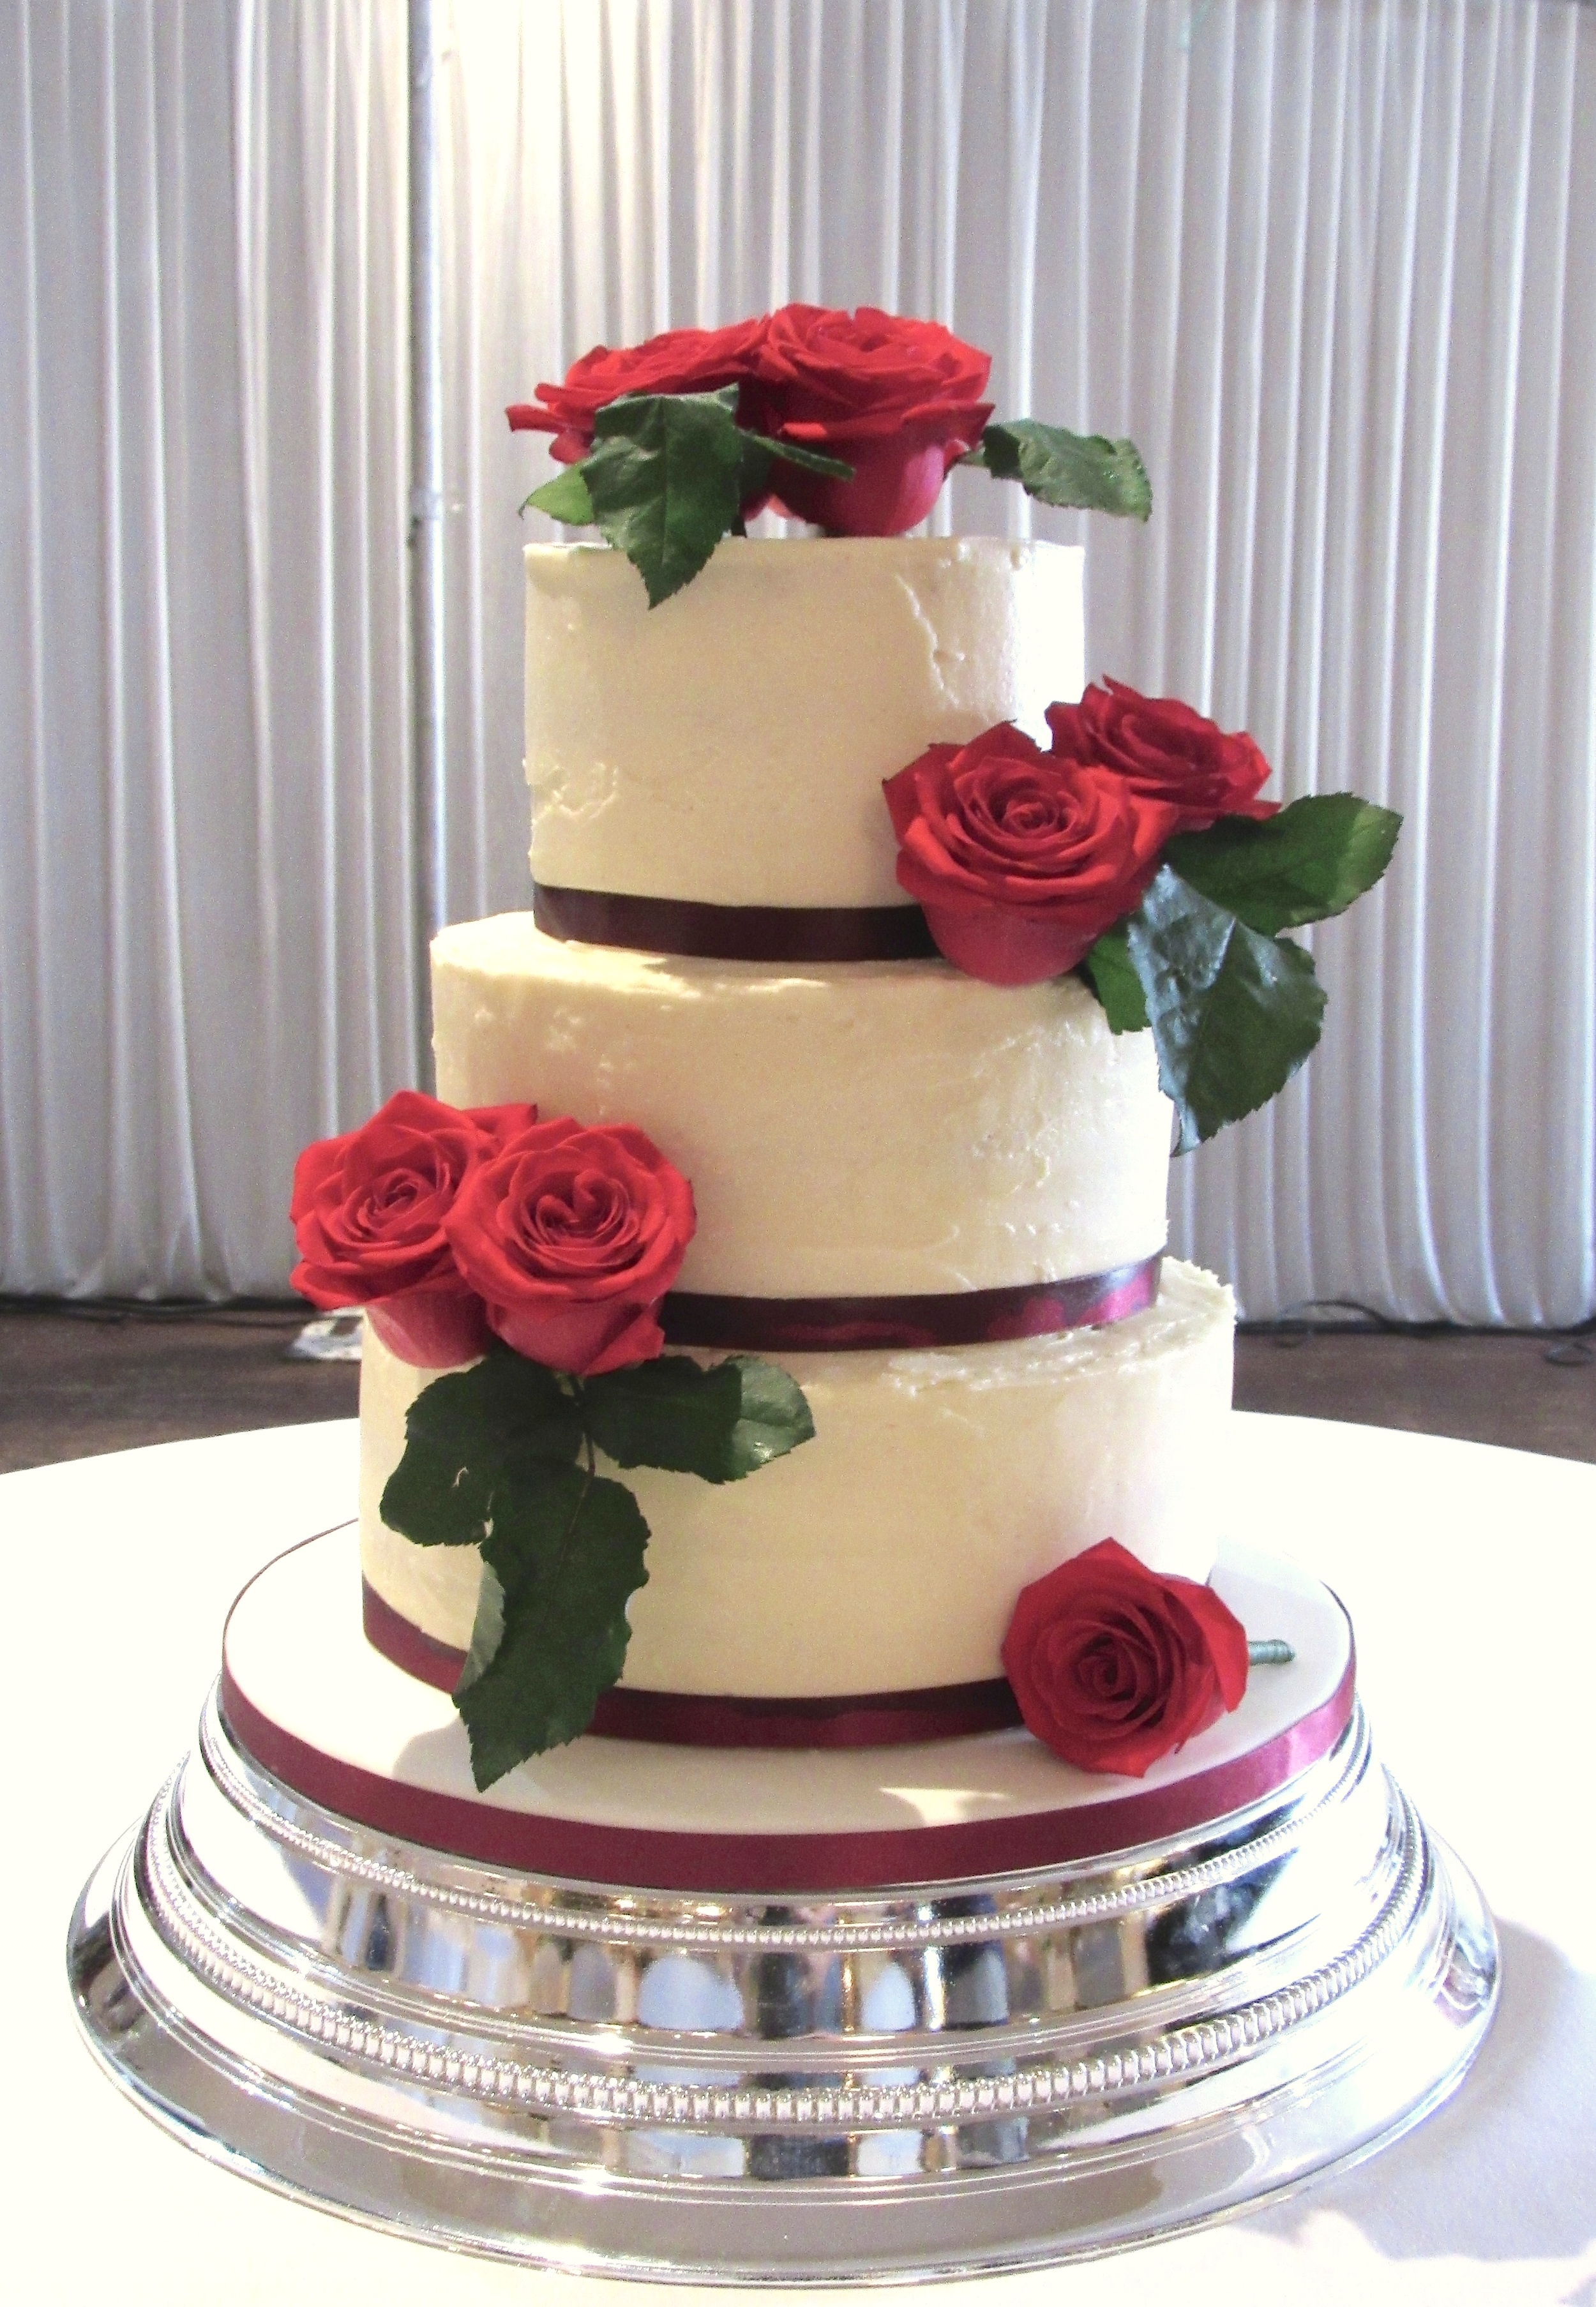 Romantic Red Rose Wedding Cake